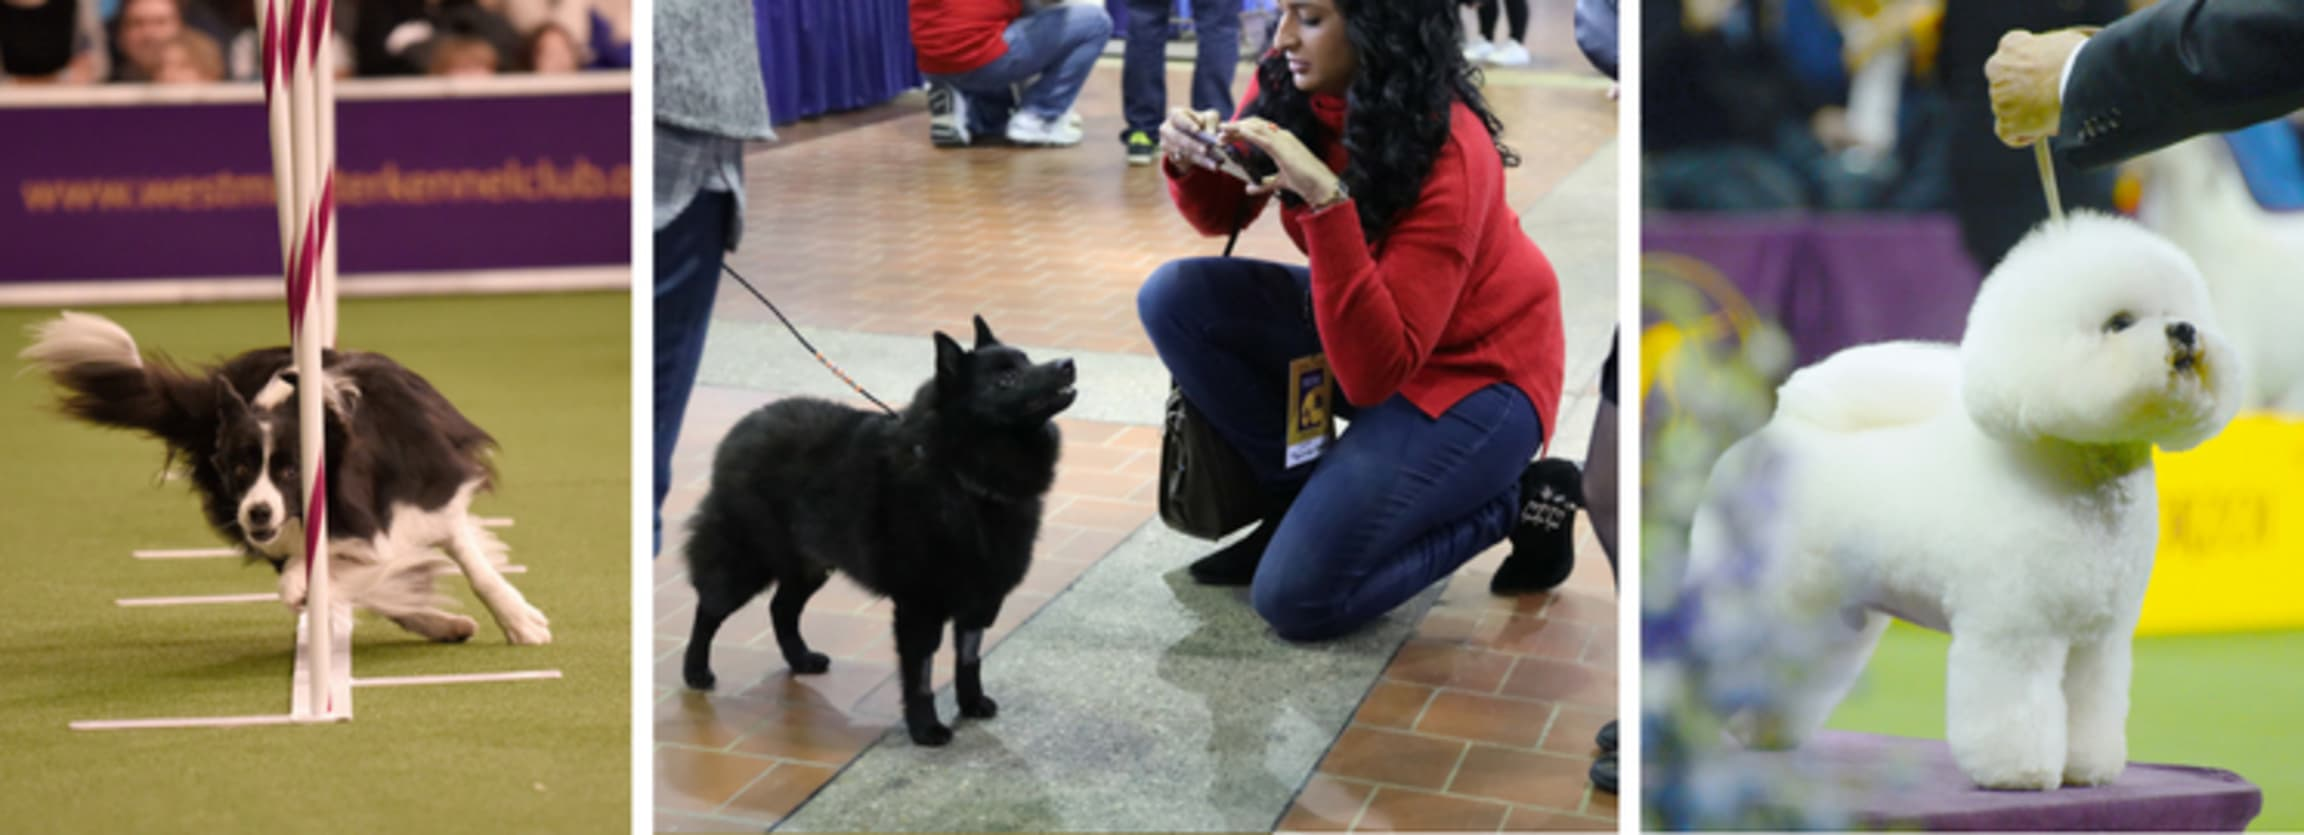 National Dog Show 2020 Dates.Schedule Of Events